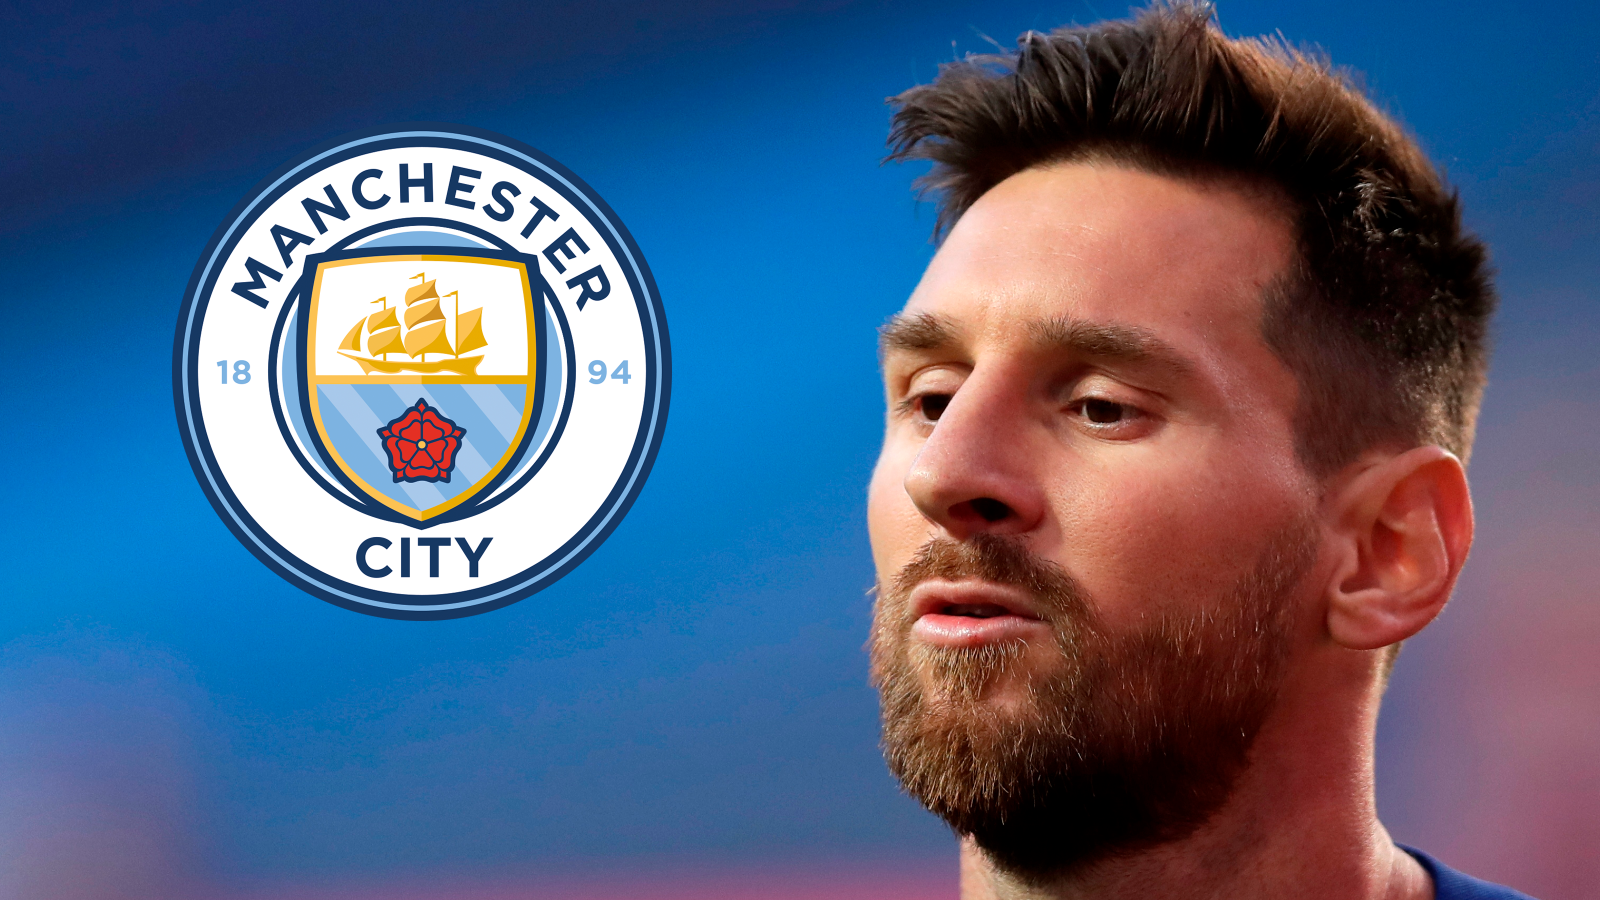 'Man City need Messi to stop Liverpool' – Reds favourites after Barcelona transfer saga, says Murphy